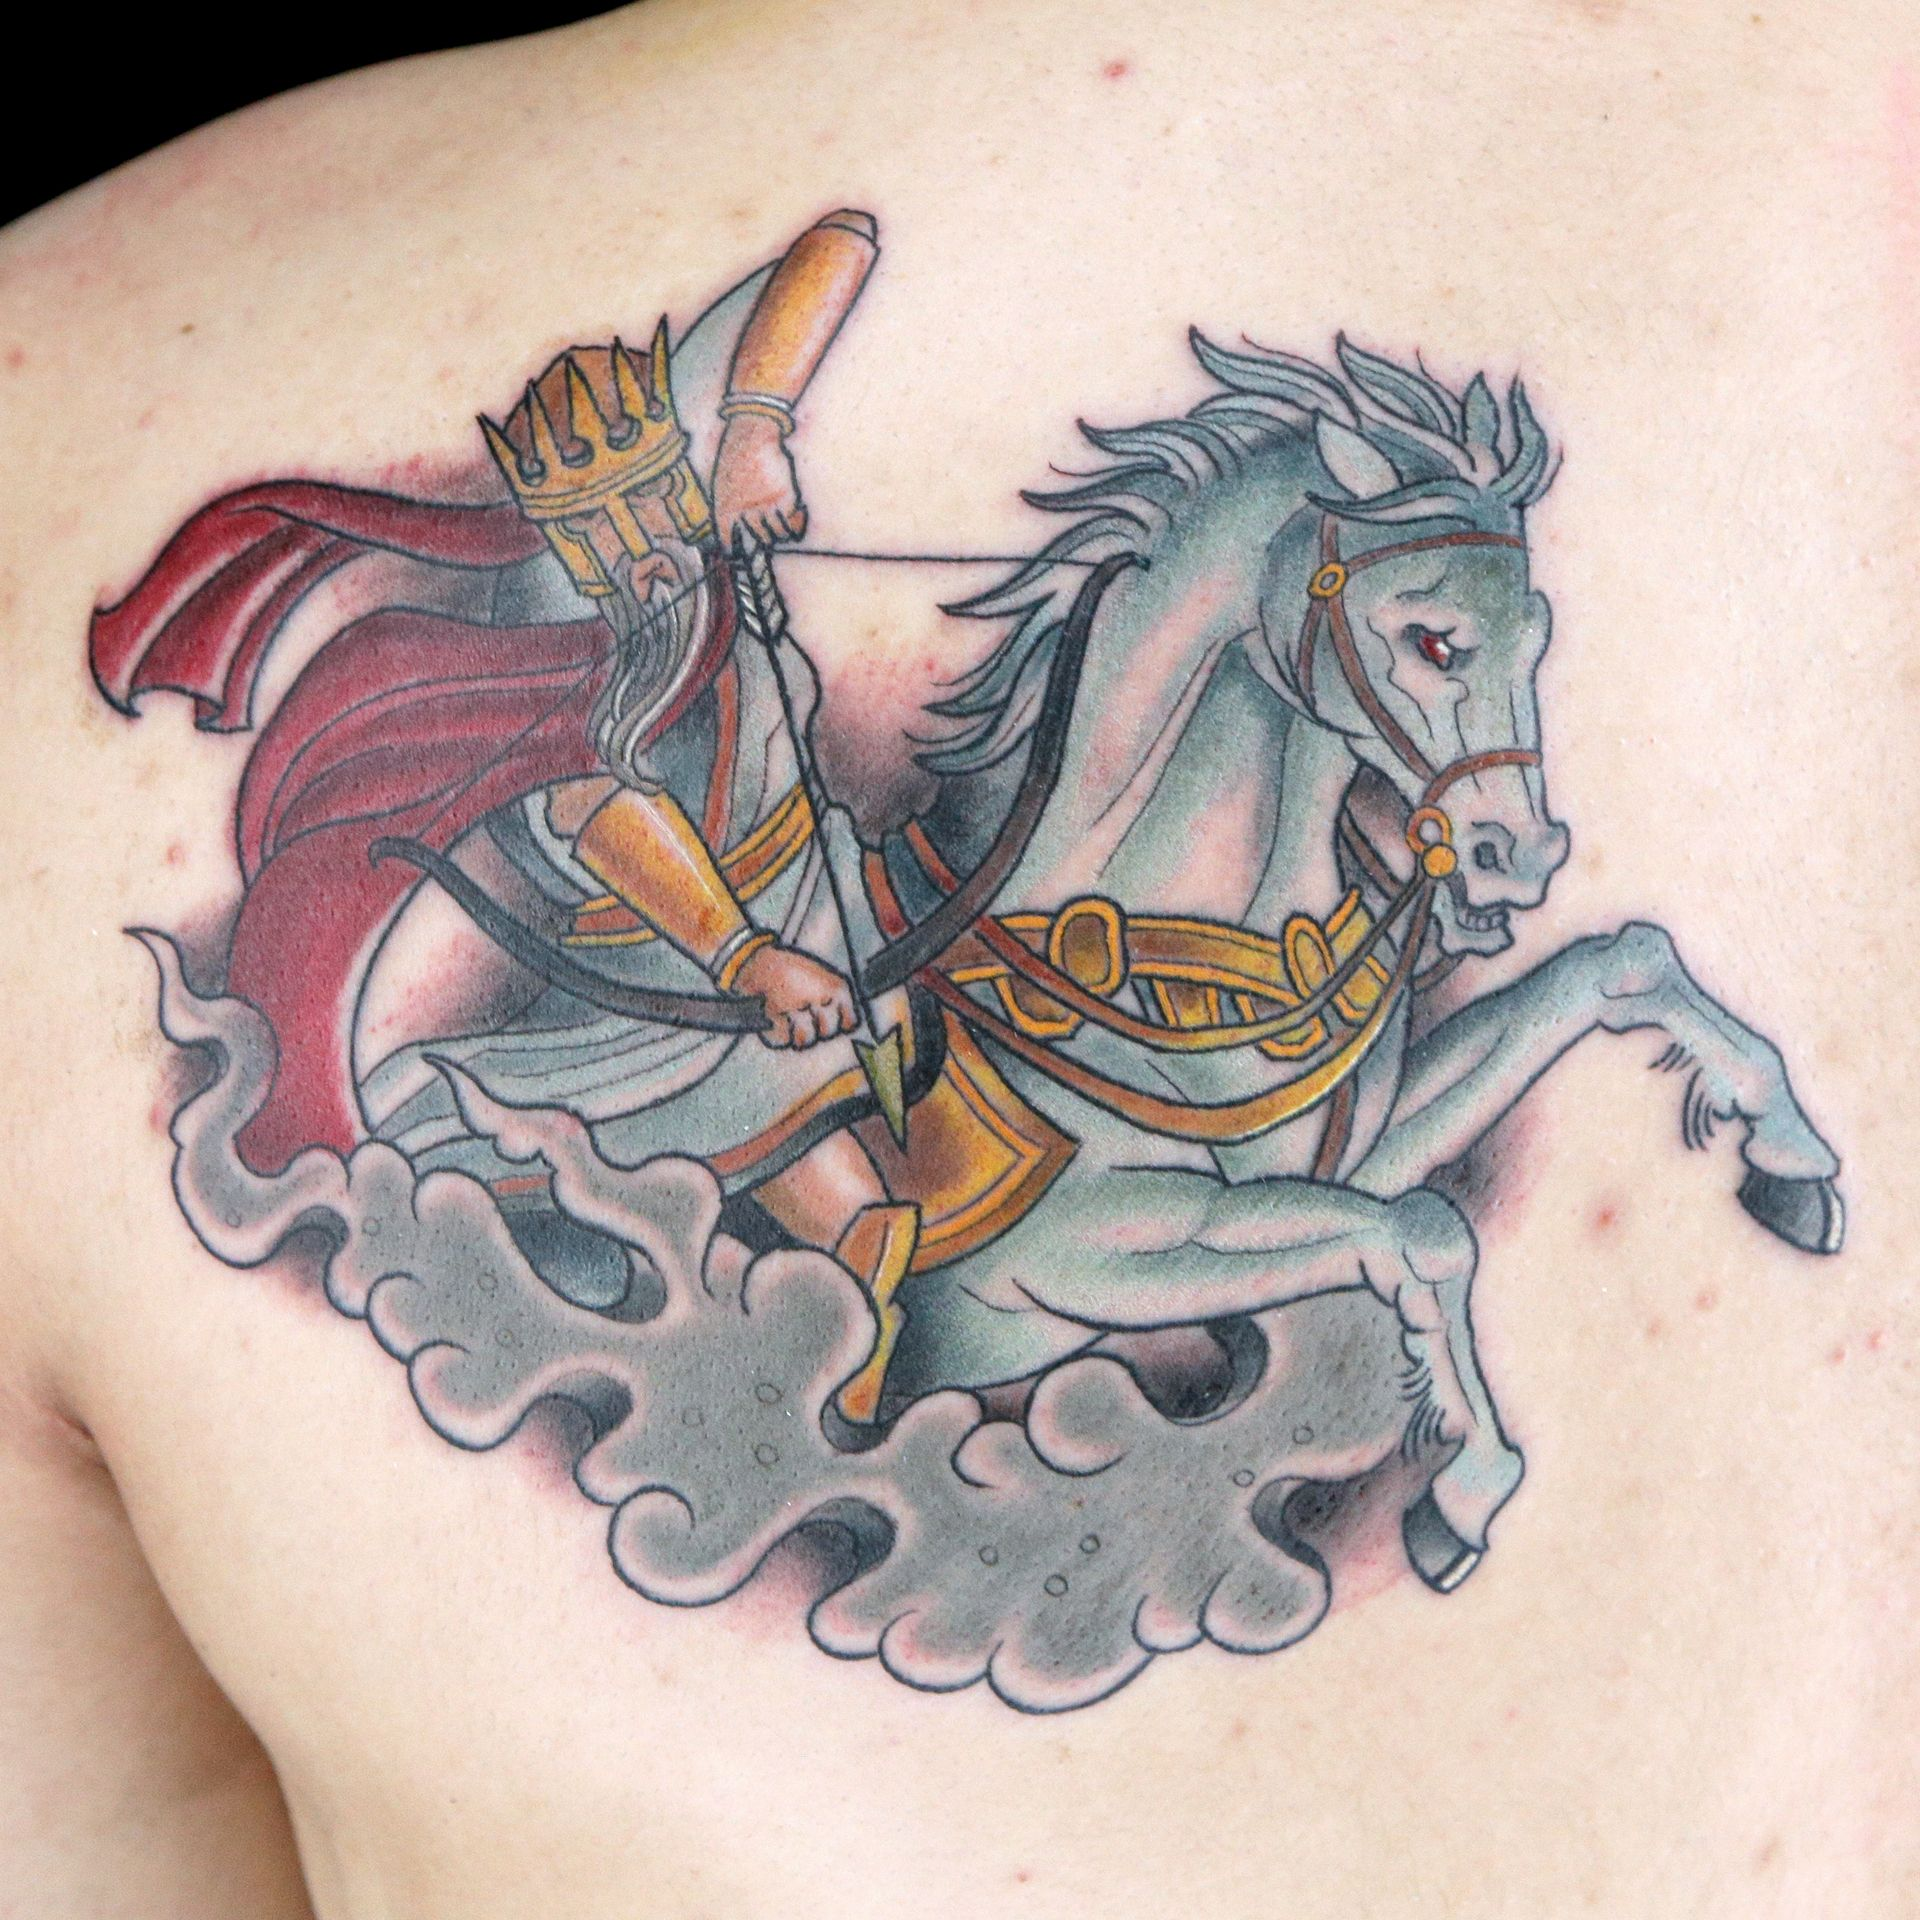 Horseman of the Apocalypse Tattoo by Tommy Helm (With